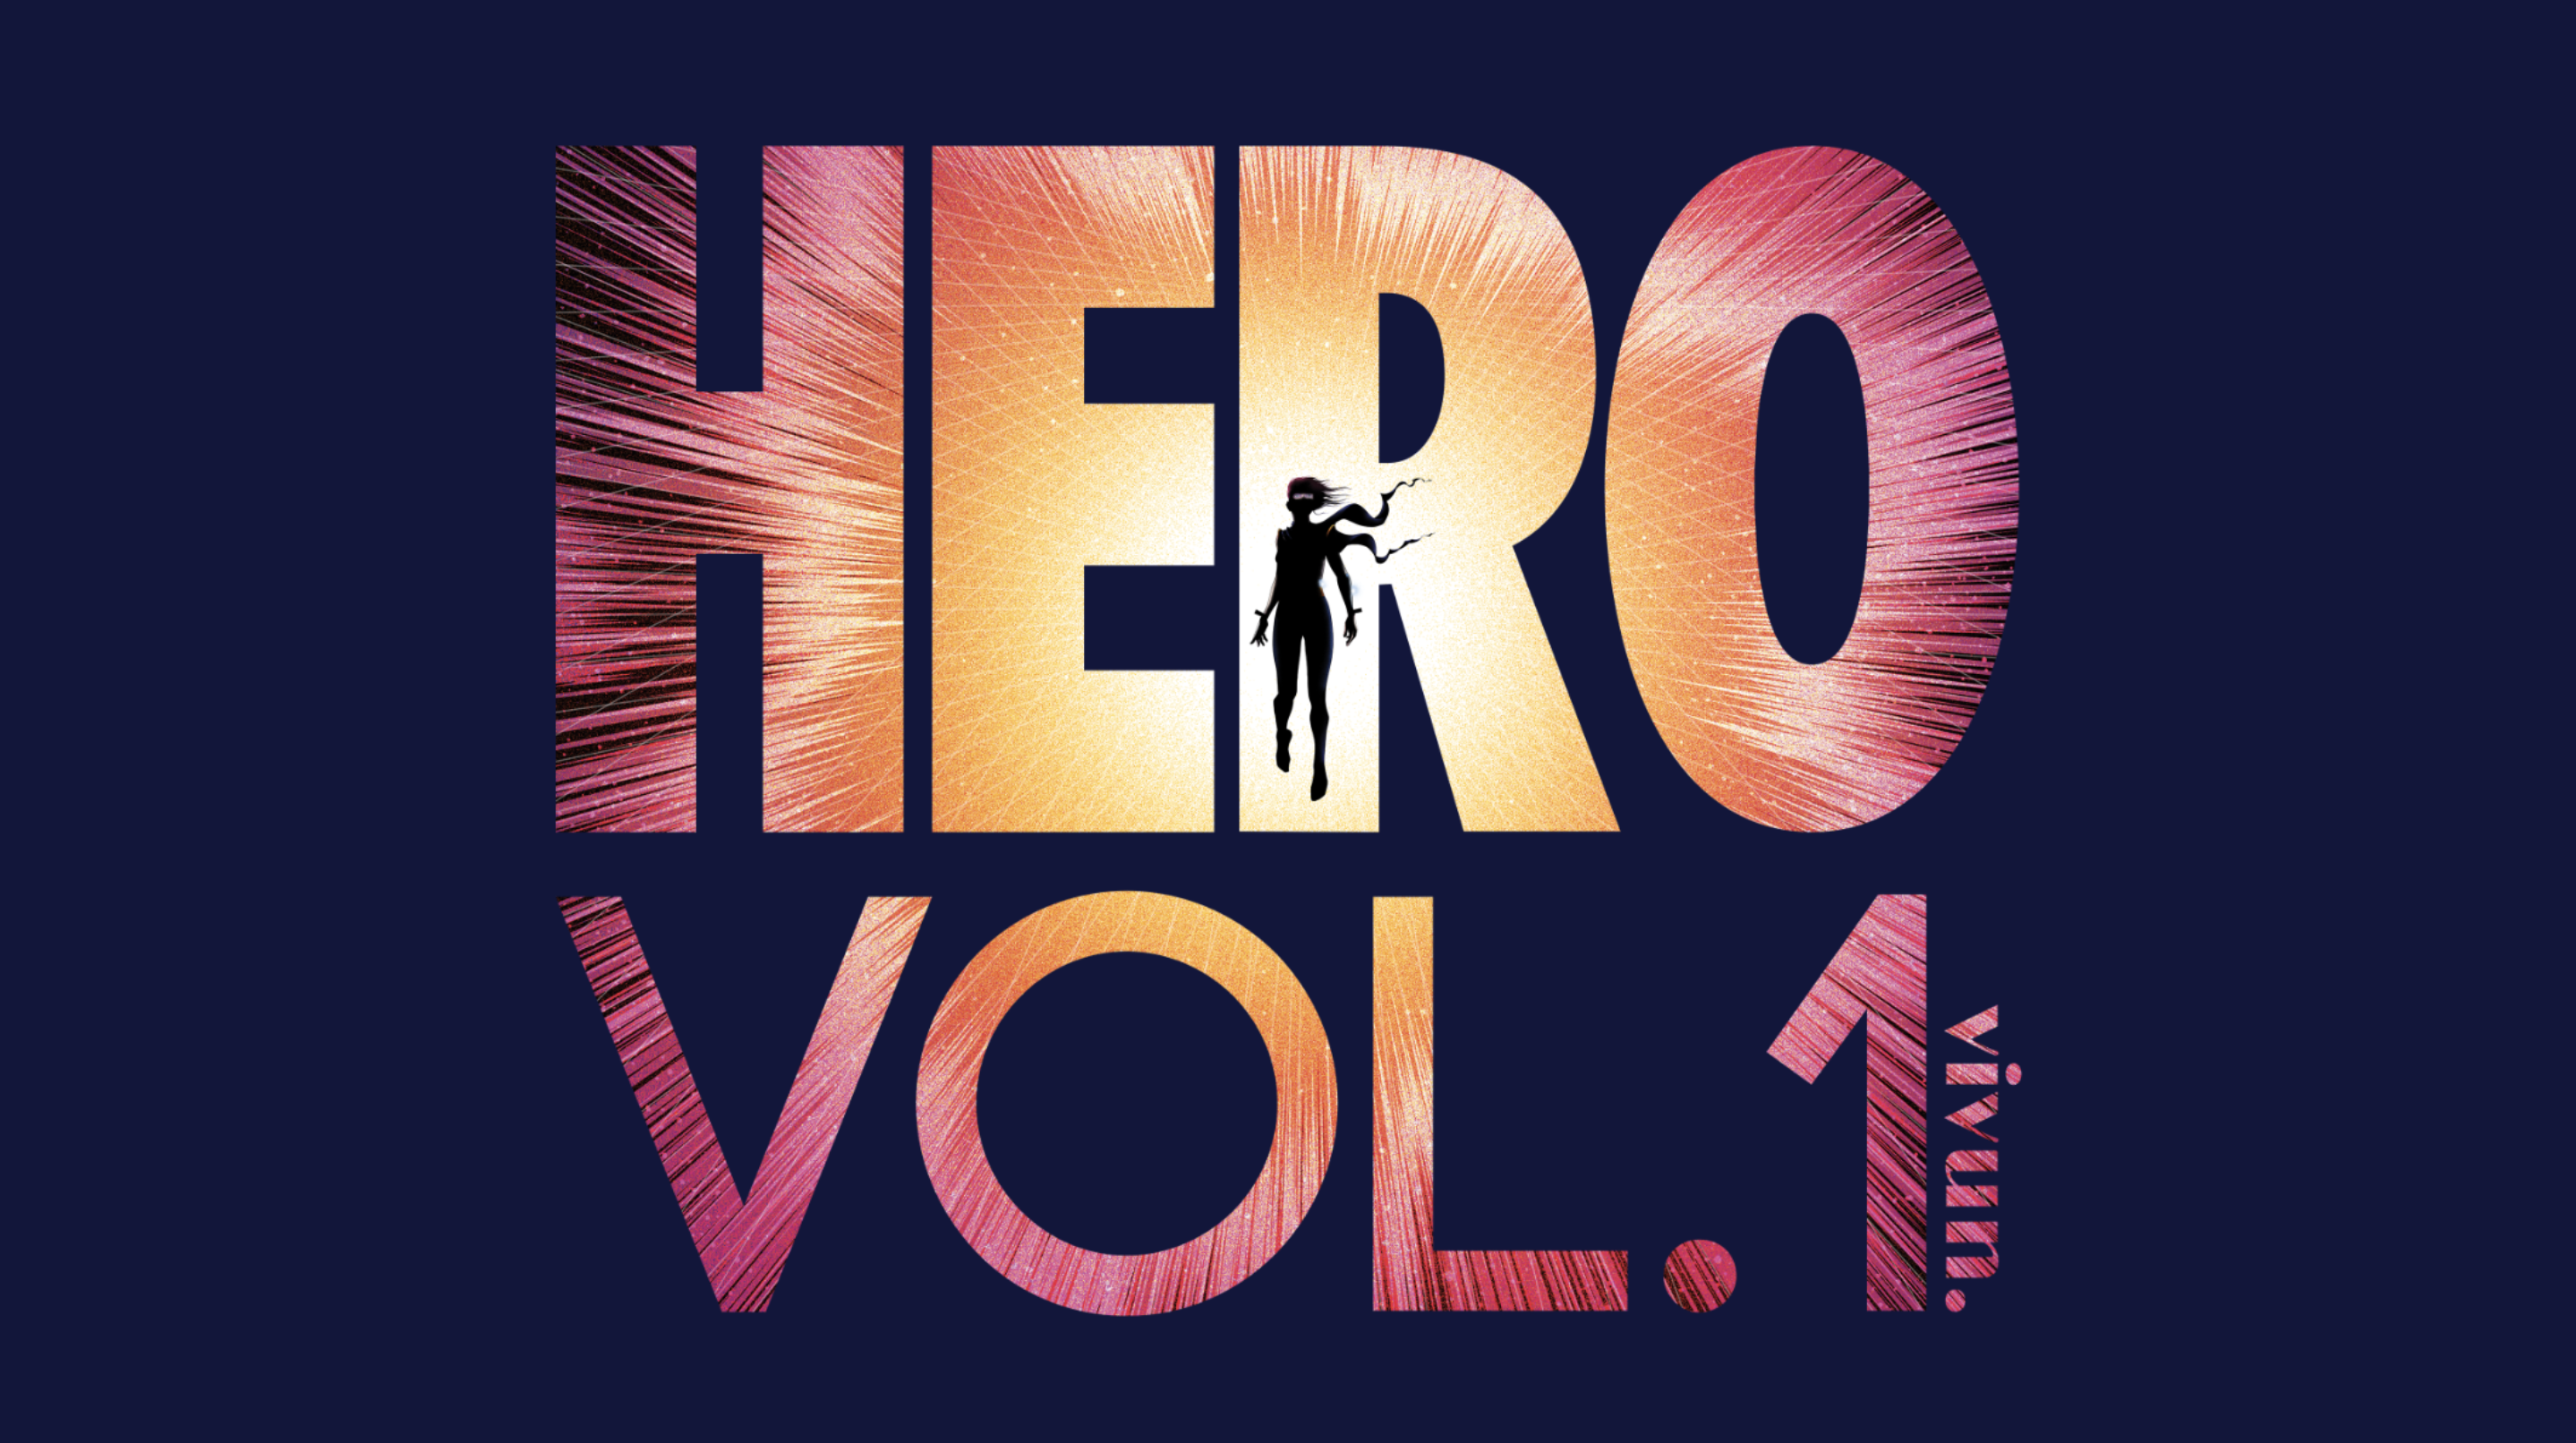 Find out What a Webcomic, Crypto, and a Product Release Have in Common in Hero Volume 1